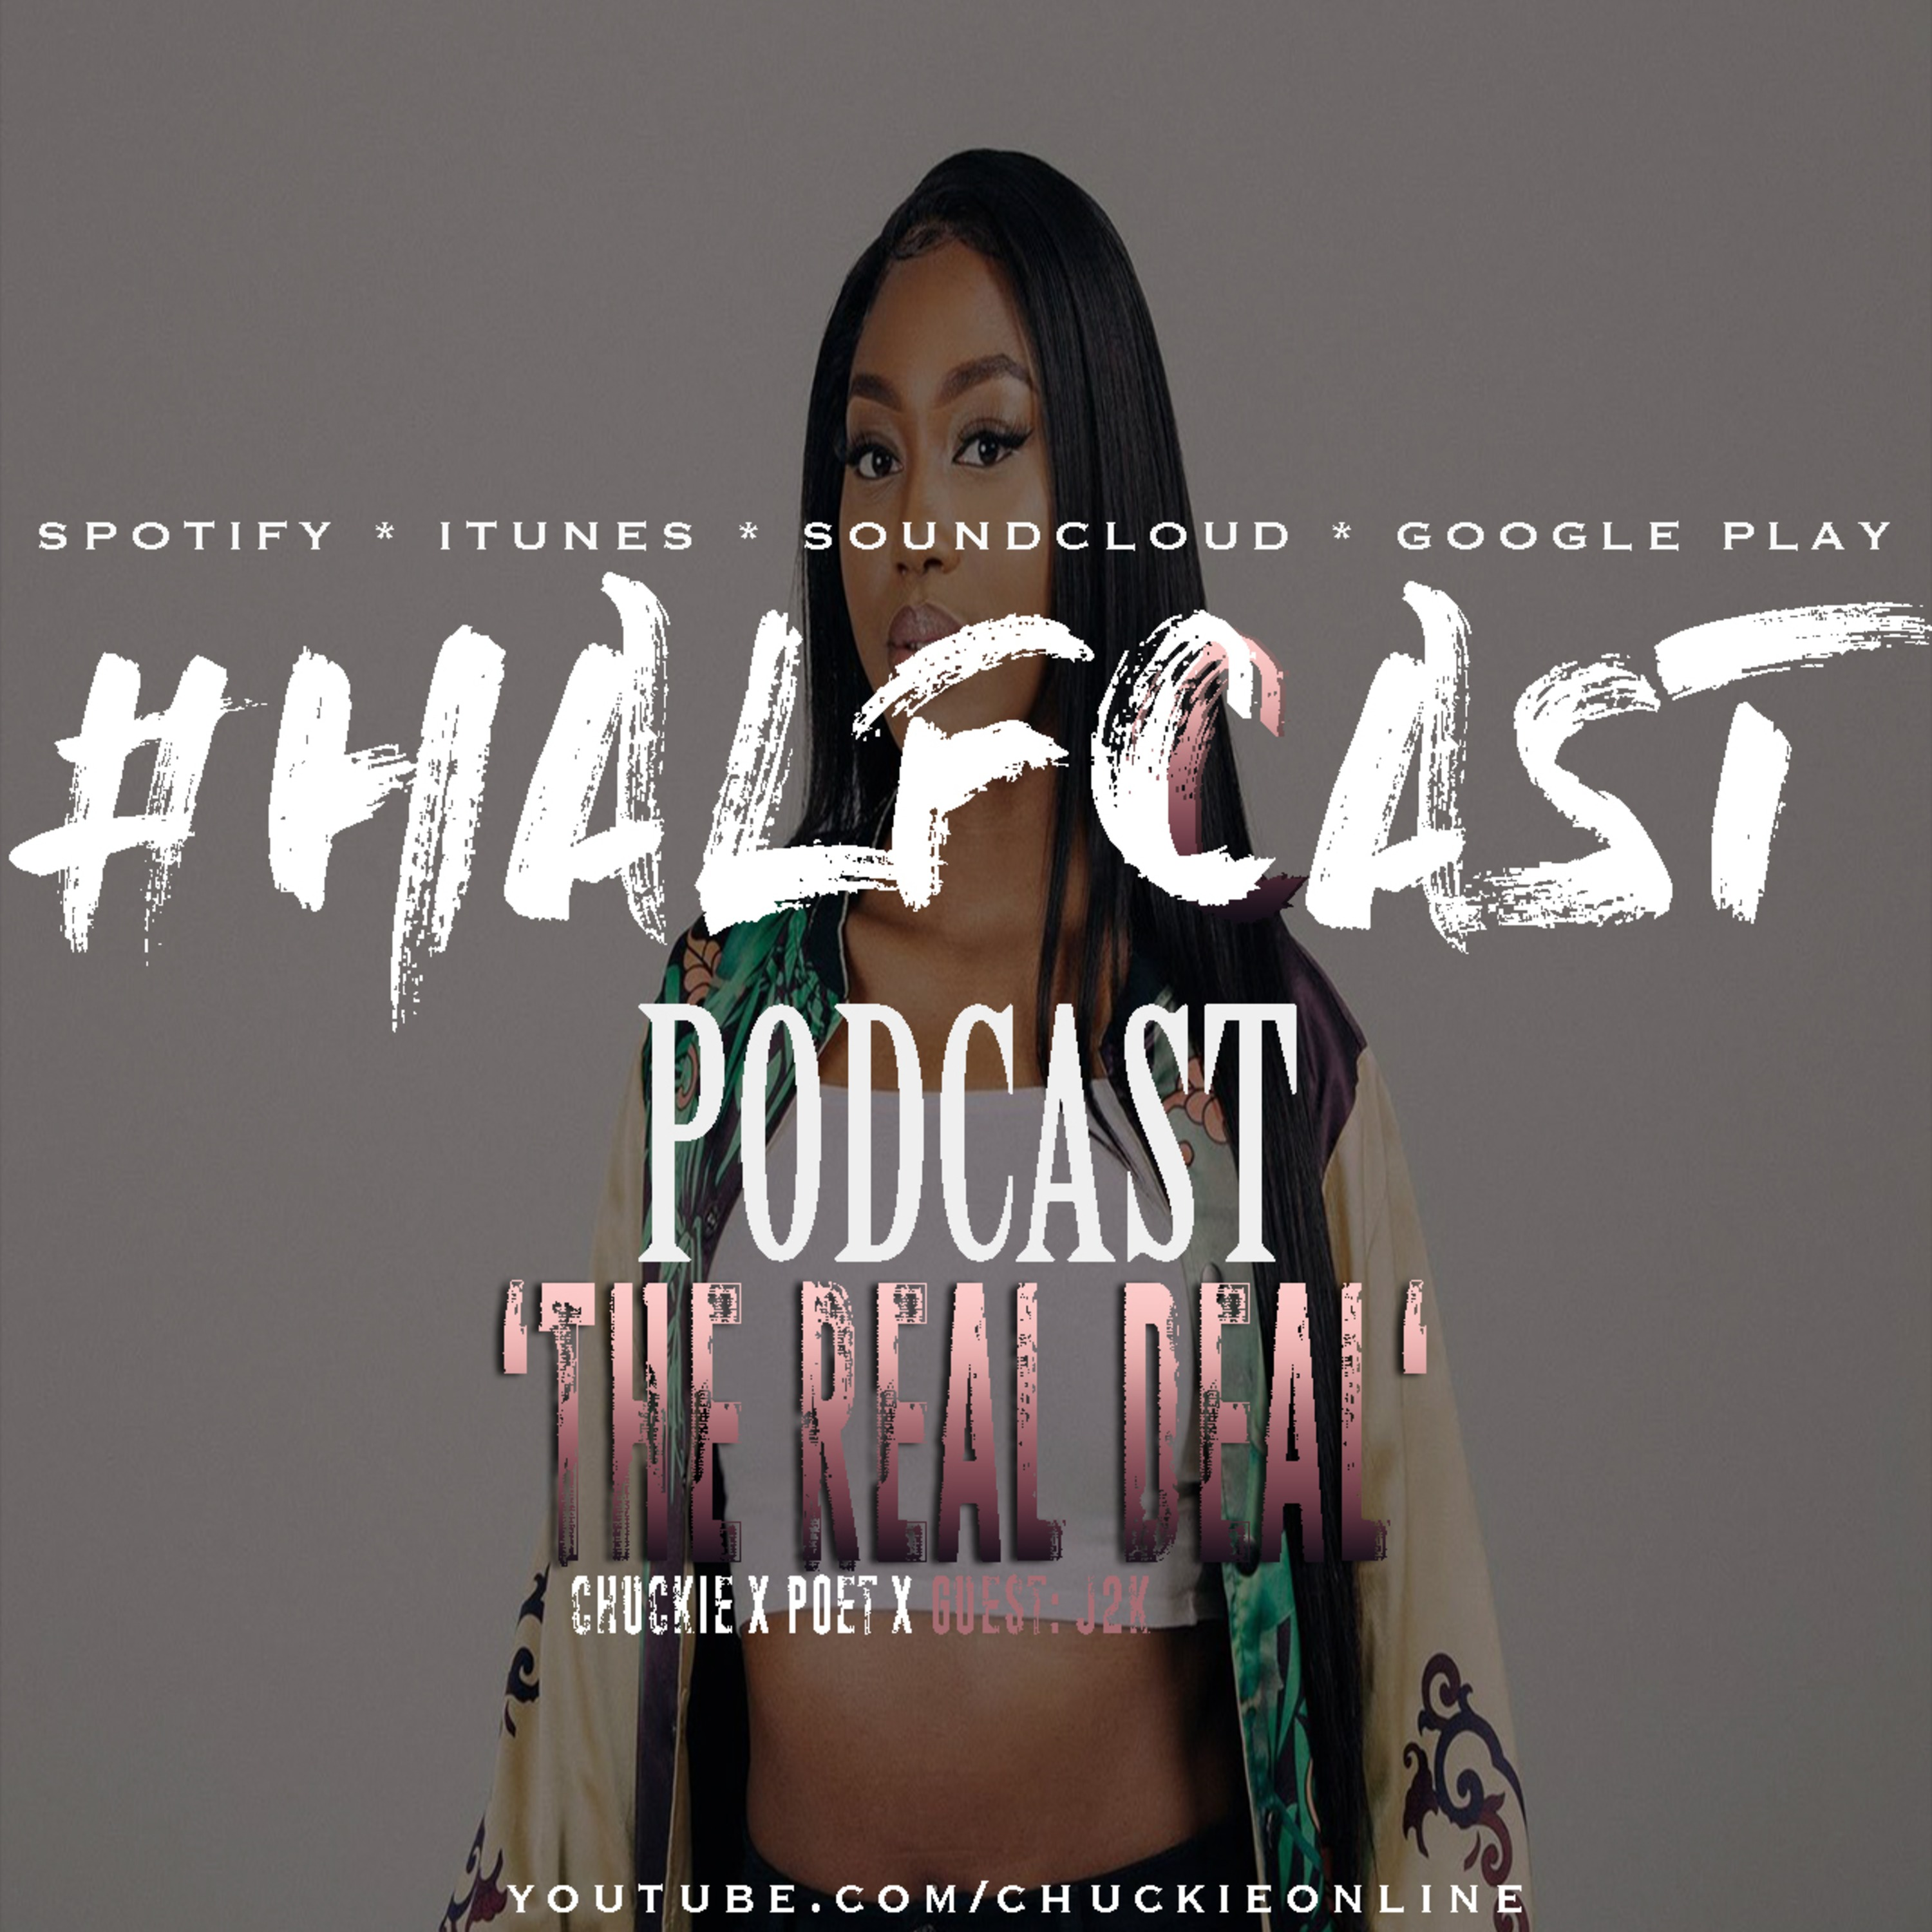 The Real Deal! Halfcast podcast